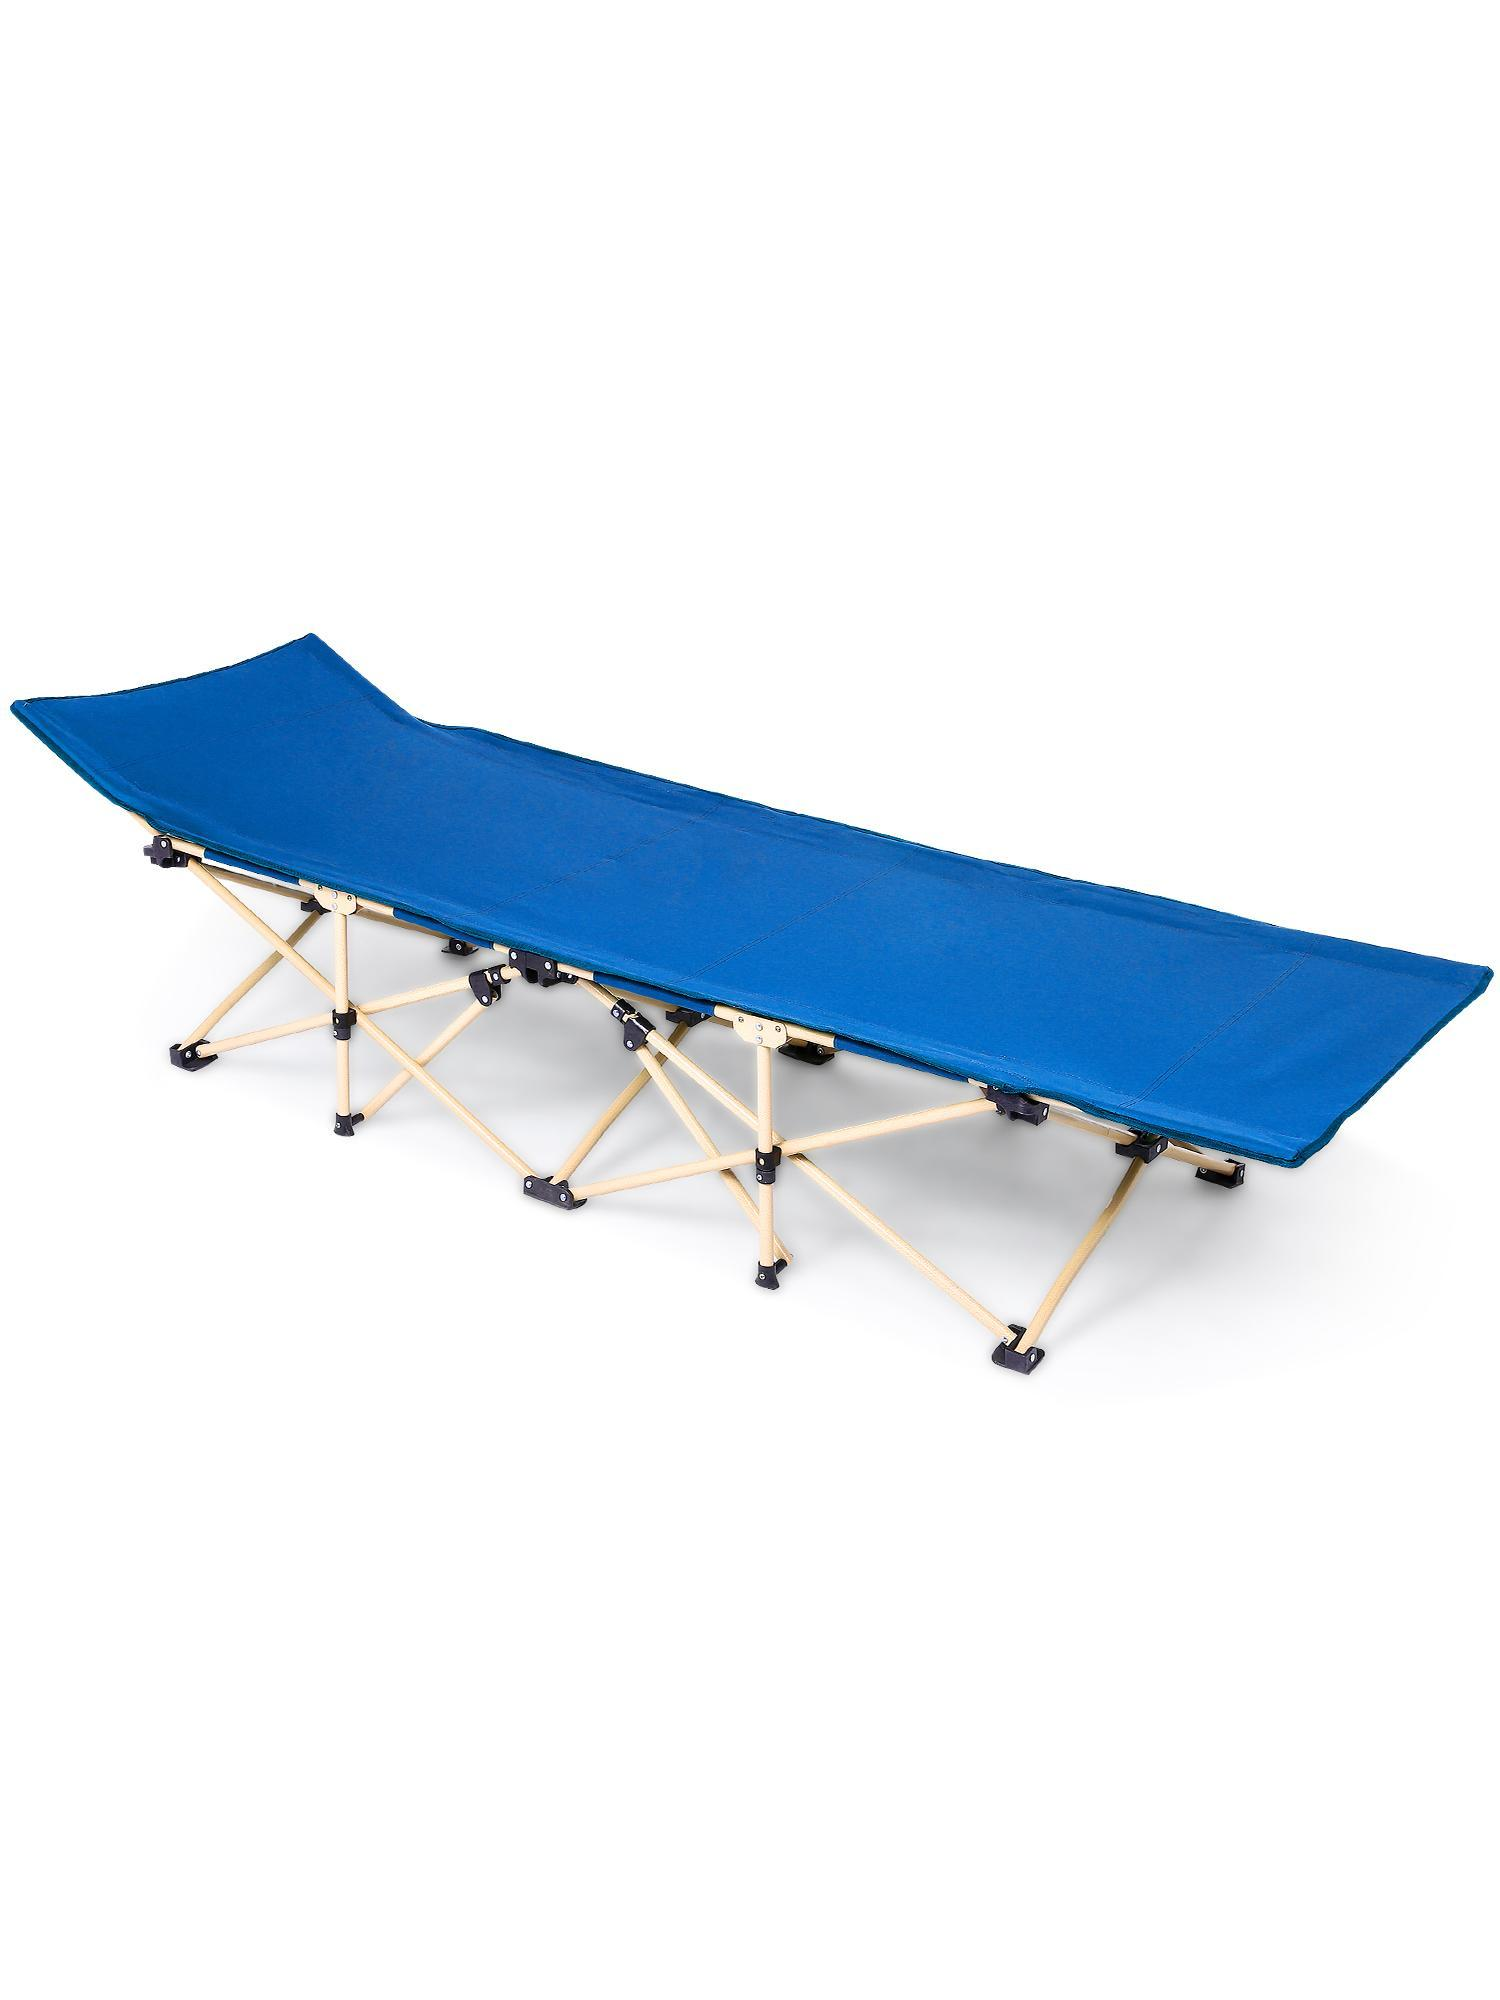 Aluminum Portable Folding Camping Bed And Cot Portable